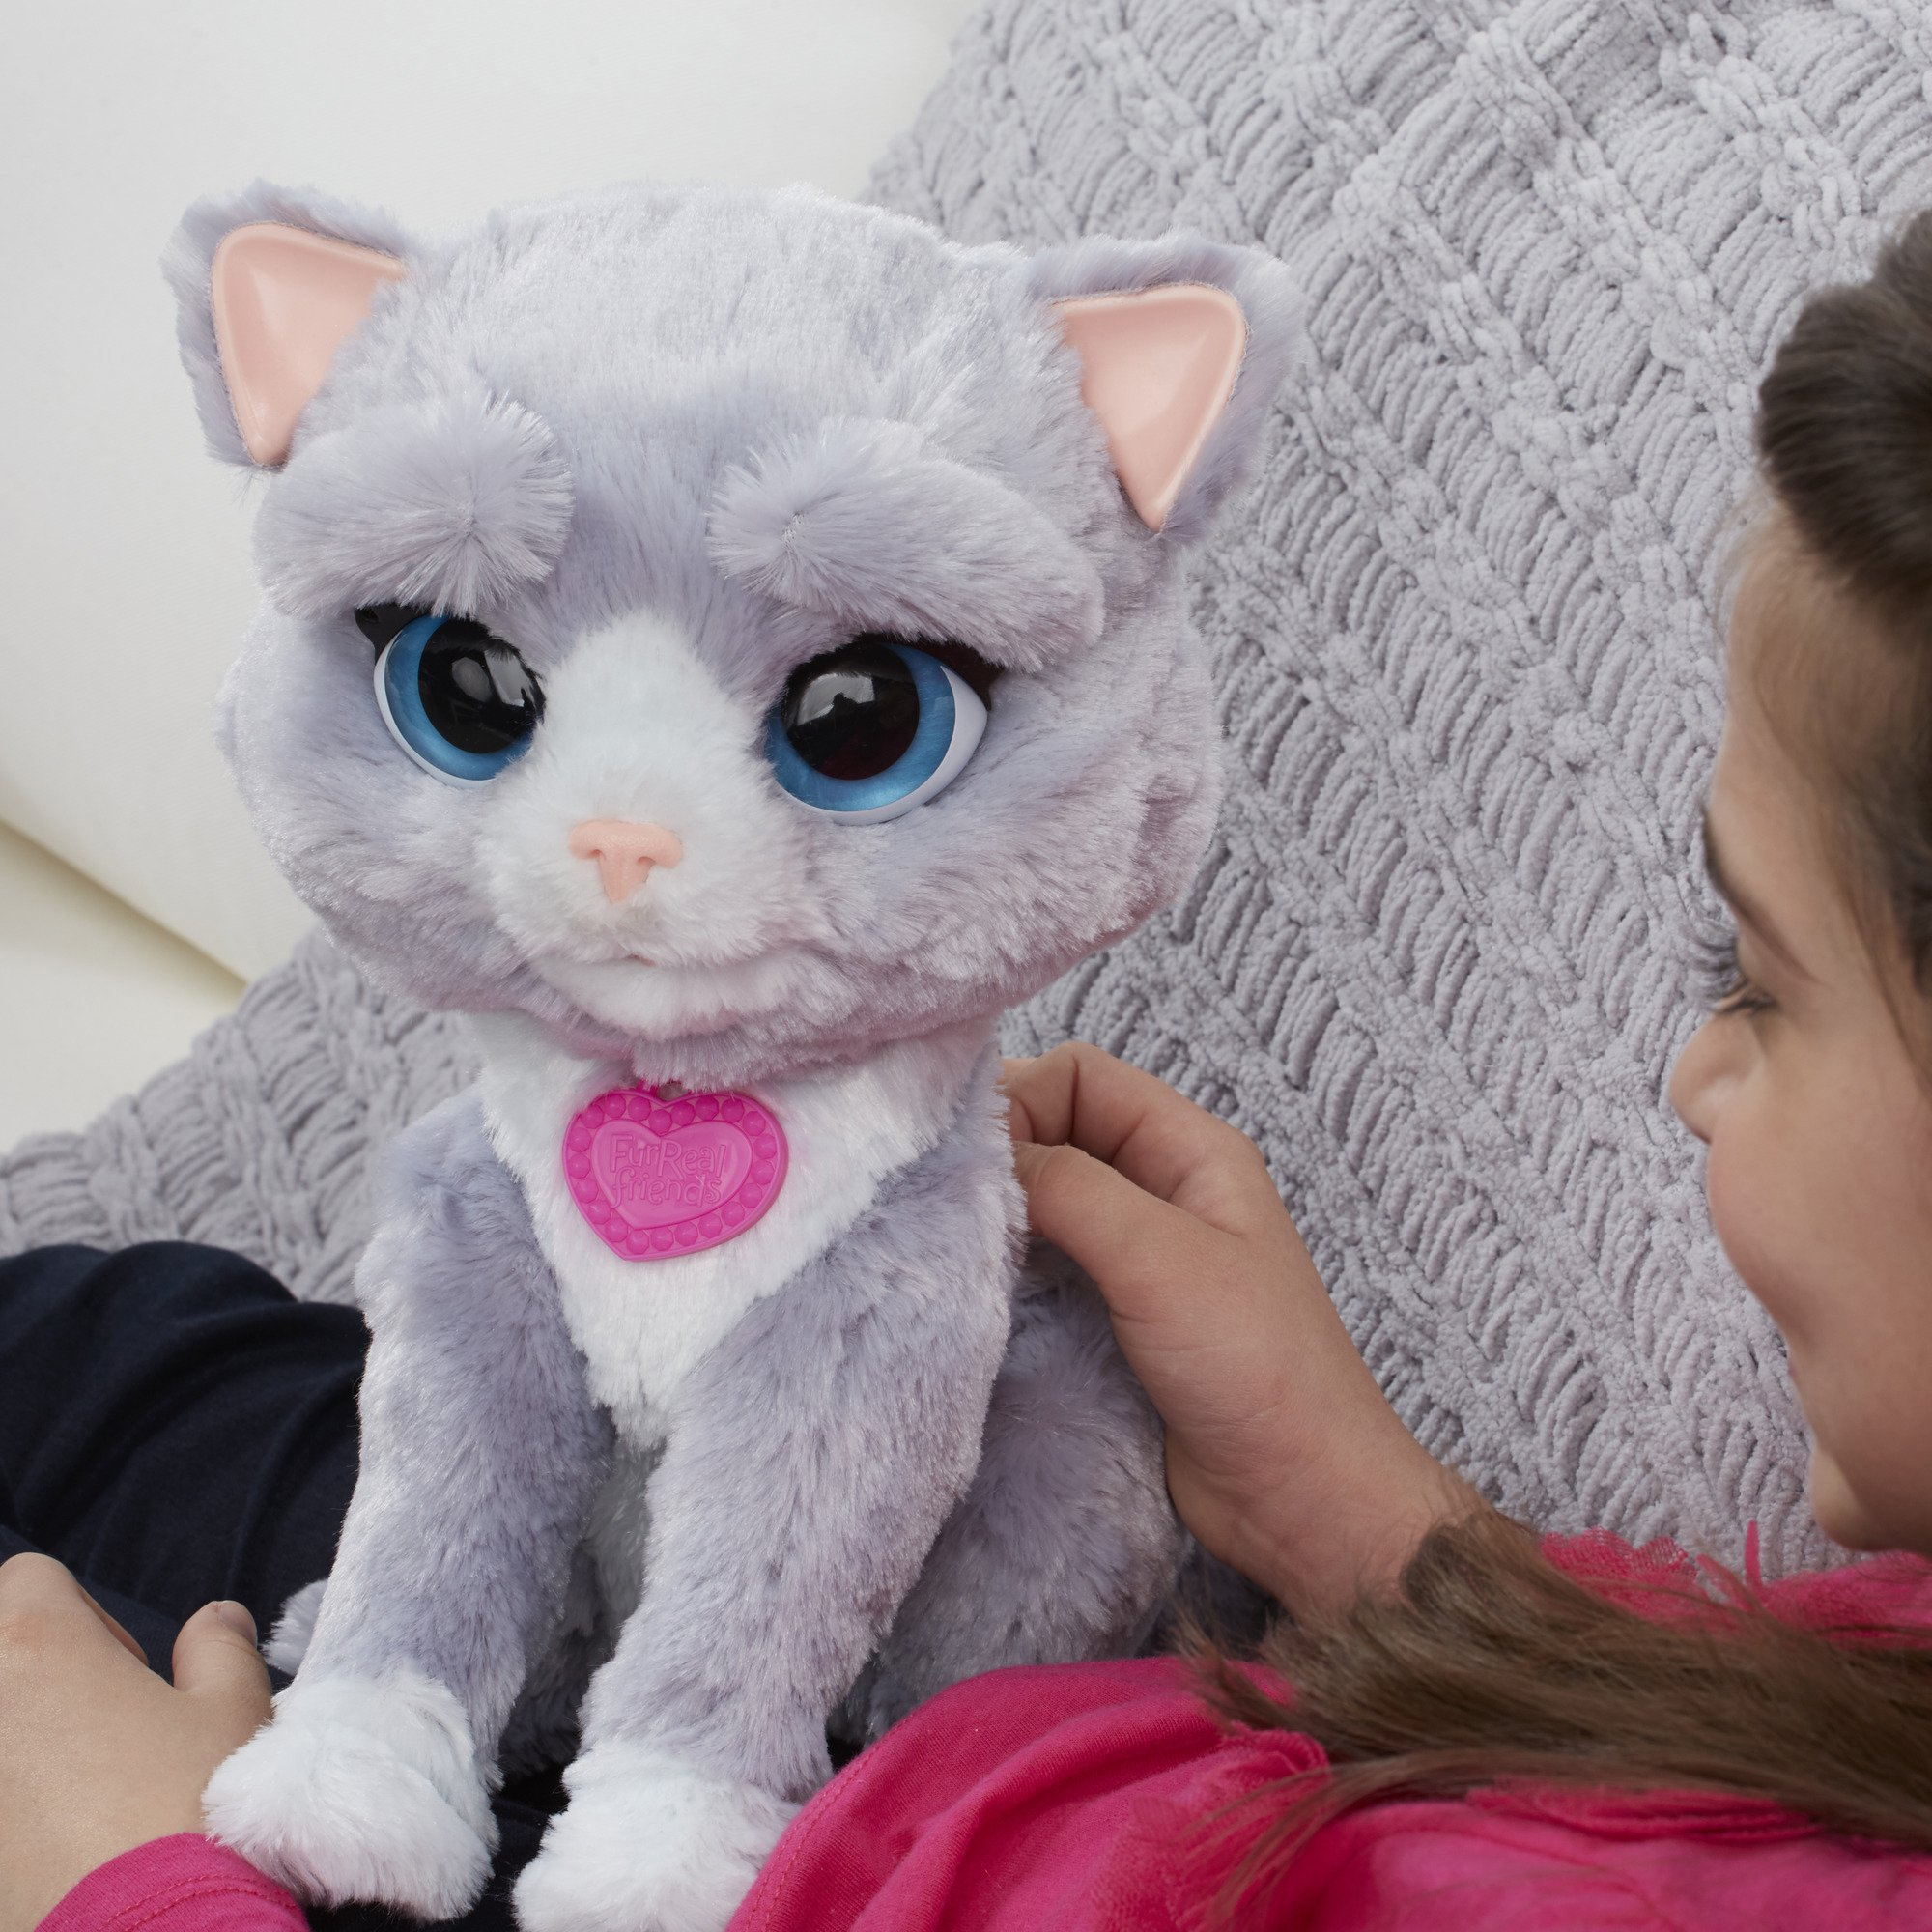 FurReal B5936AF1 Bootsie Interactive Plush Kitty Toy, Ages 4 & Up by FurReal (Image #10)